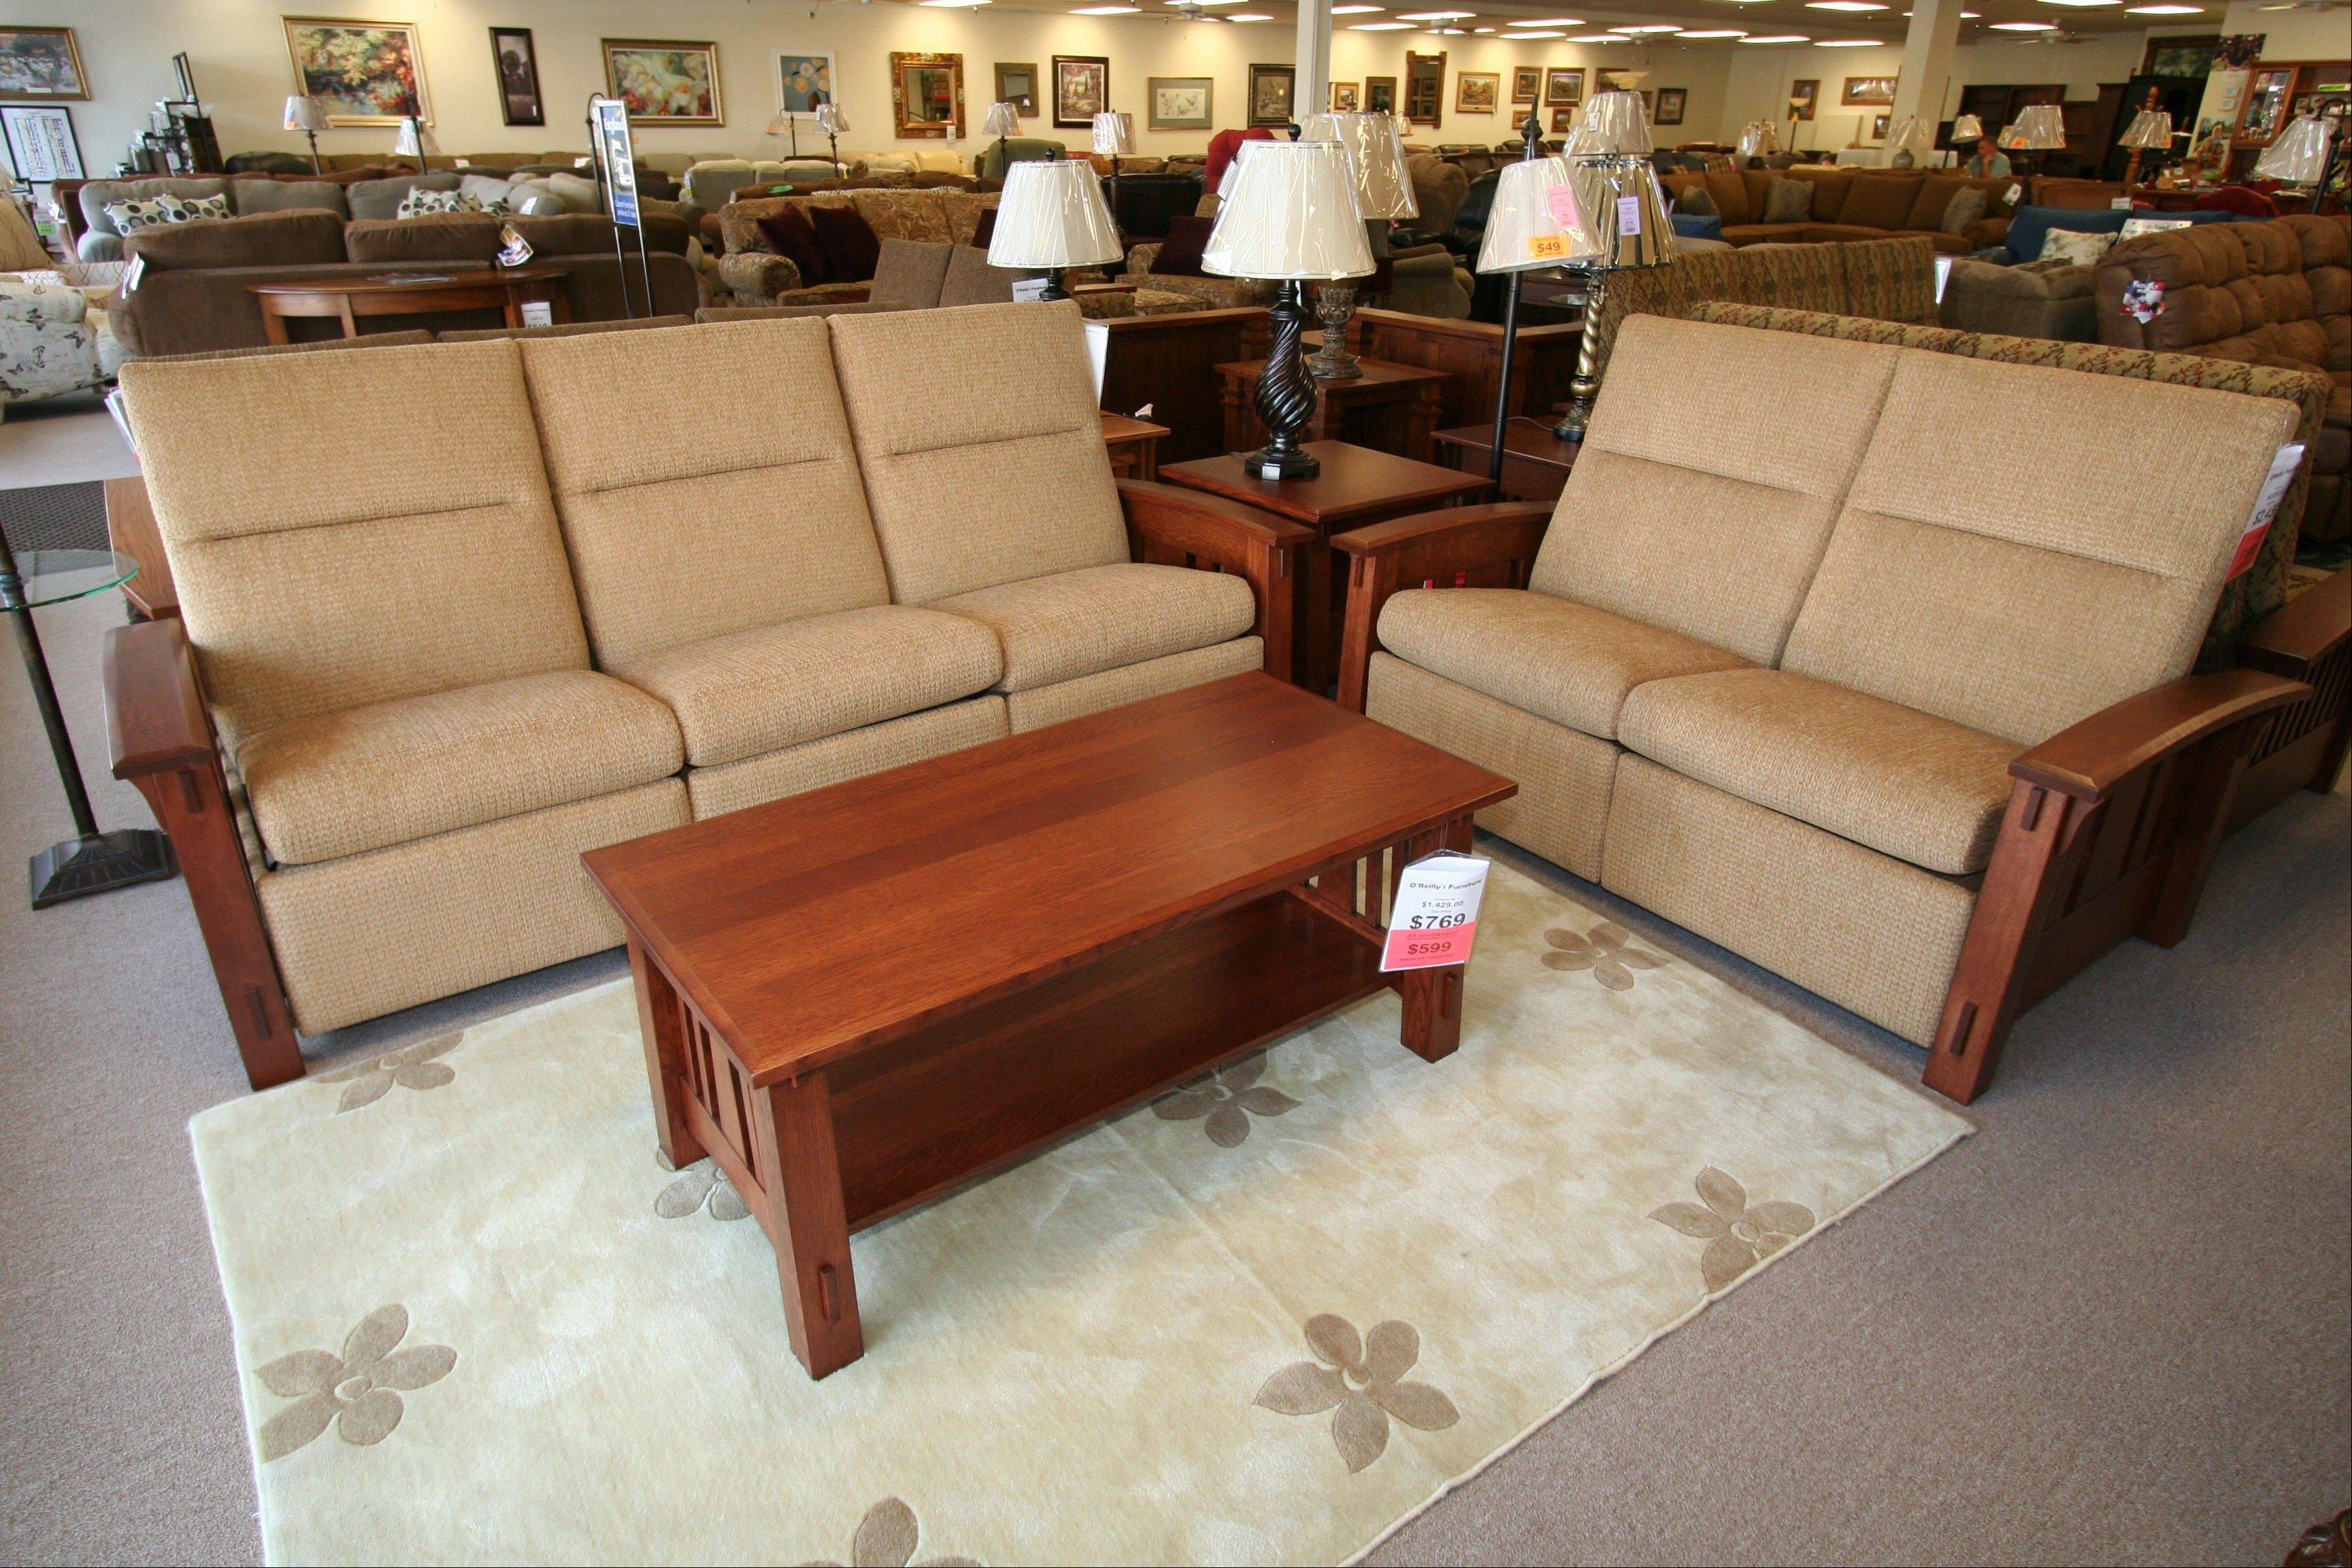 This summer O�Reilly�s Furniture opened a new store and showroom in Libertyville.